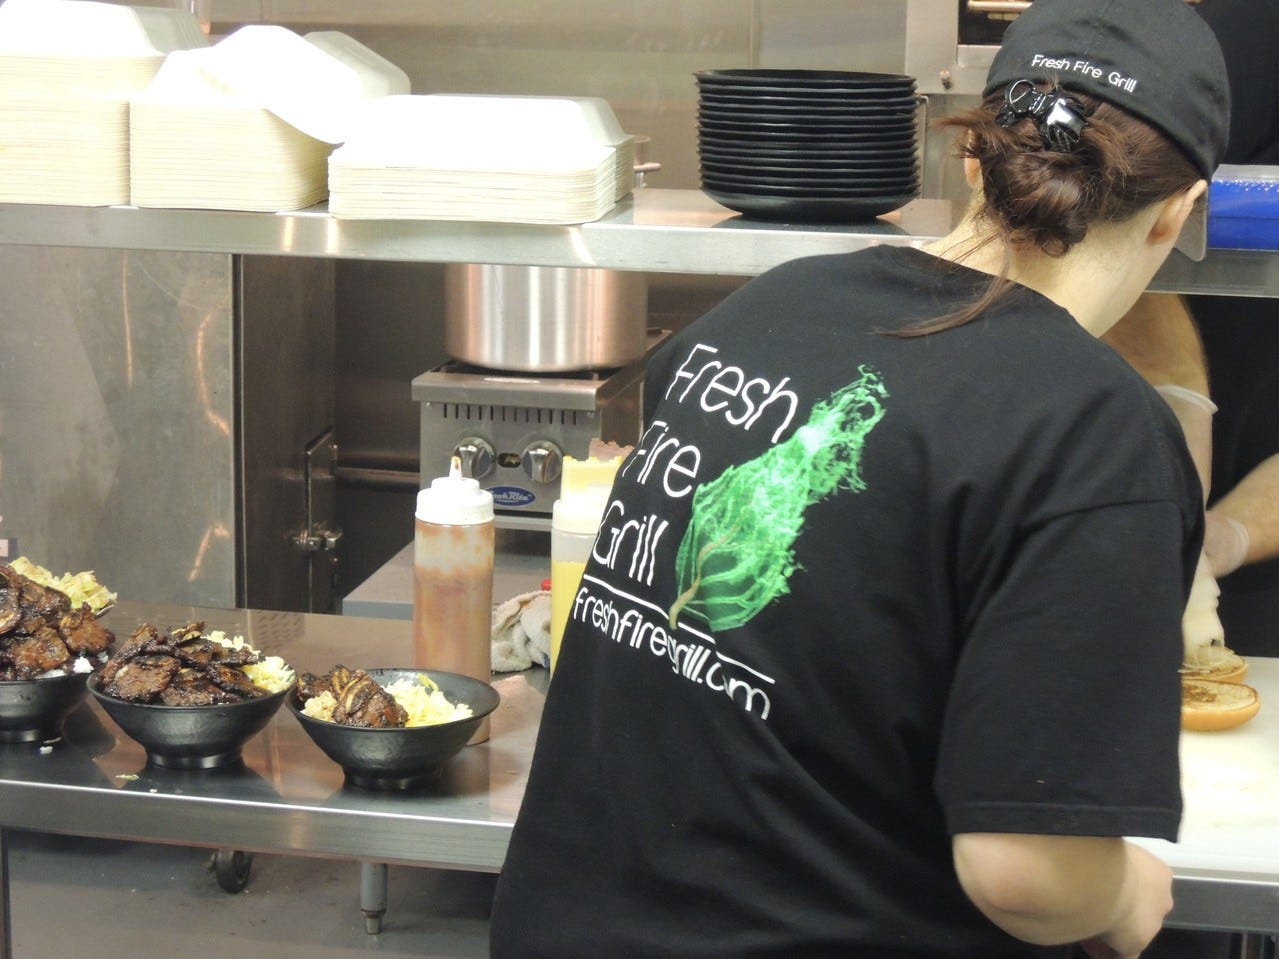 Laura Peyton prepares rice bowls and entree plates at Fresh Fire Grill on Lake Boulevard in Redding.